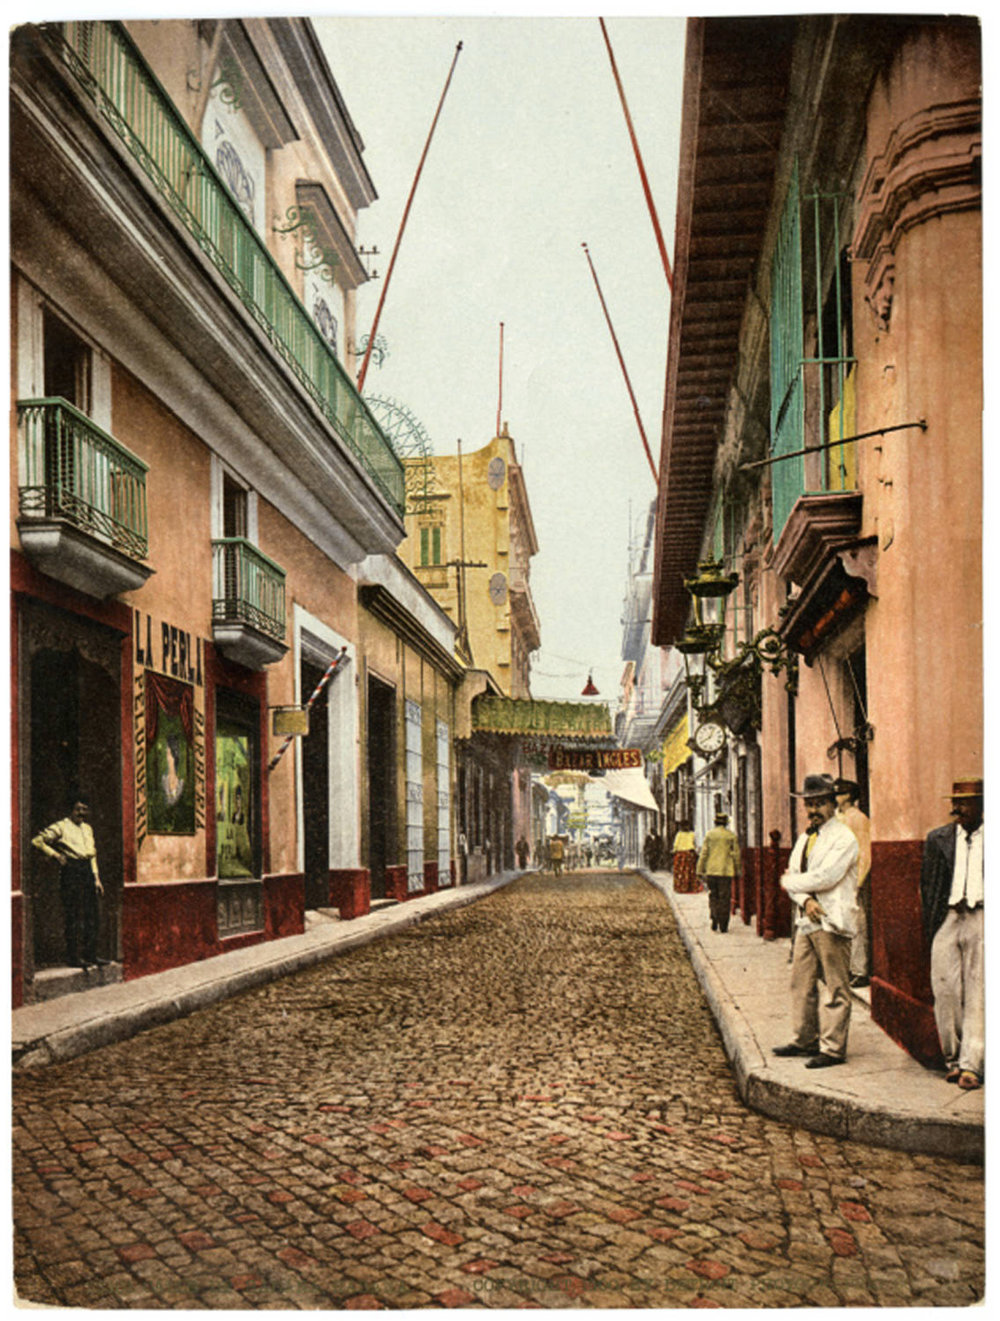 A view every tourist knows: Calle Obispo in La Habana Vieja. The shopping street today for tourists and place to sip a Mojito, before heading back to Varadero with your guáguá, the hand-colored photo is from 1900. Cuban Photograph Collection by the  University of Miami Libraries . Image Public Domain.